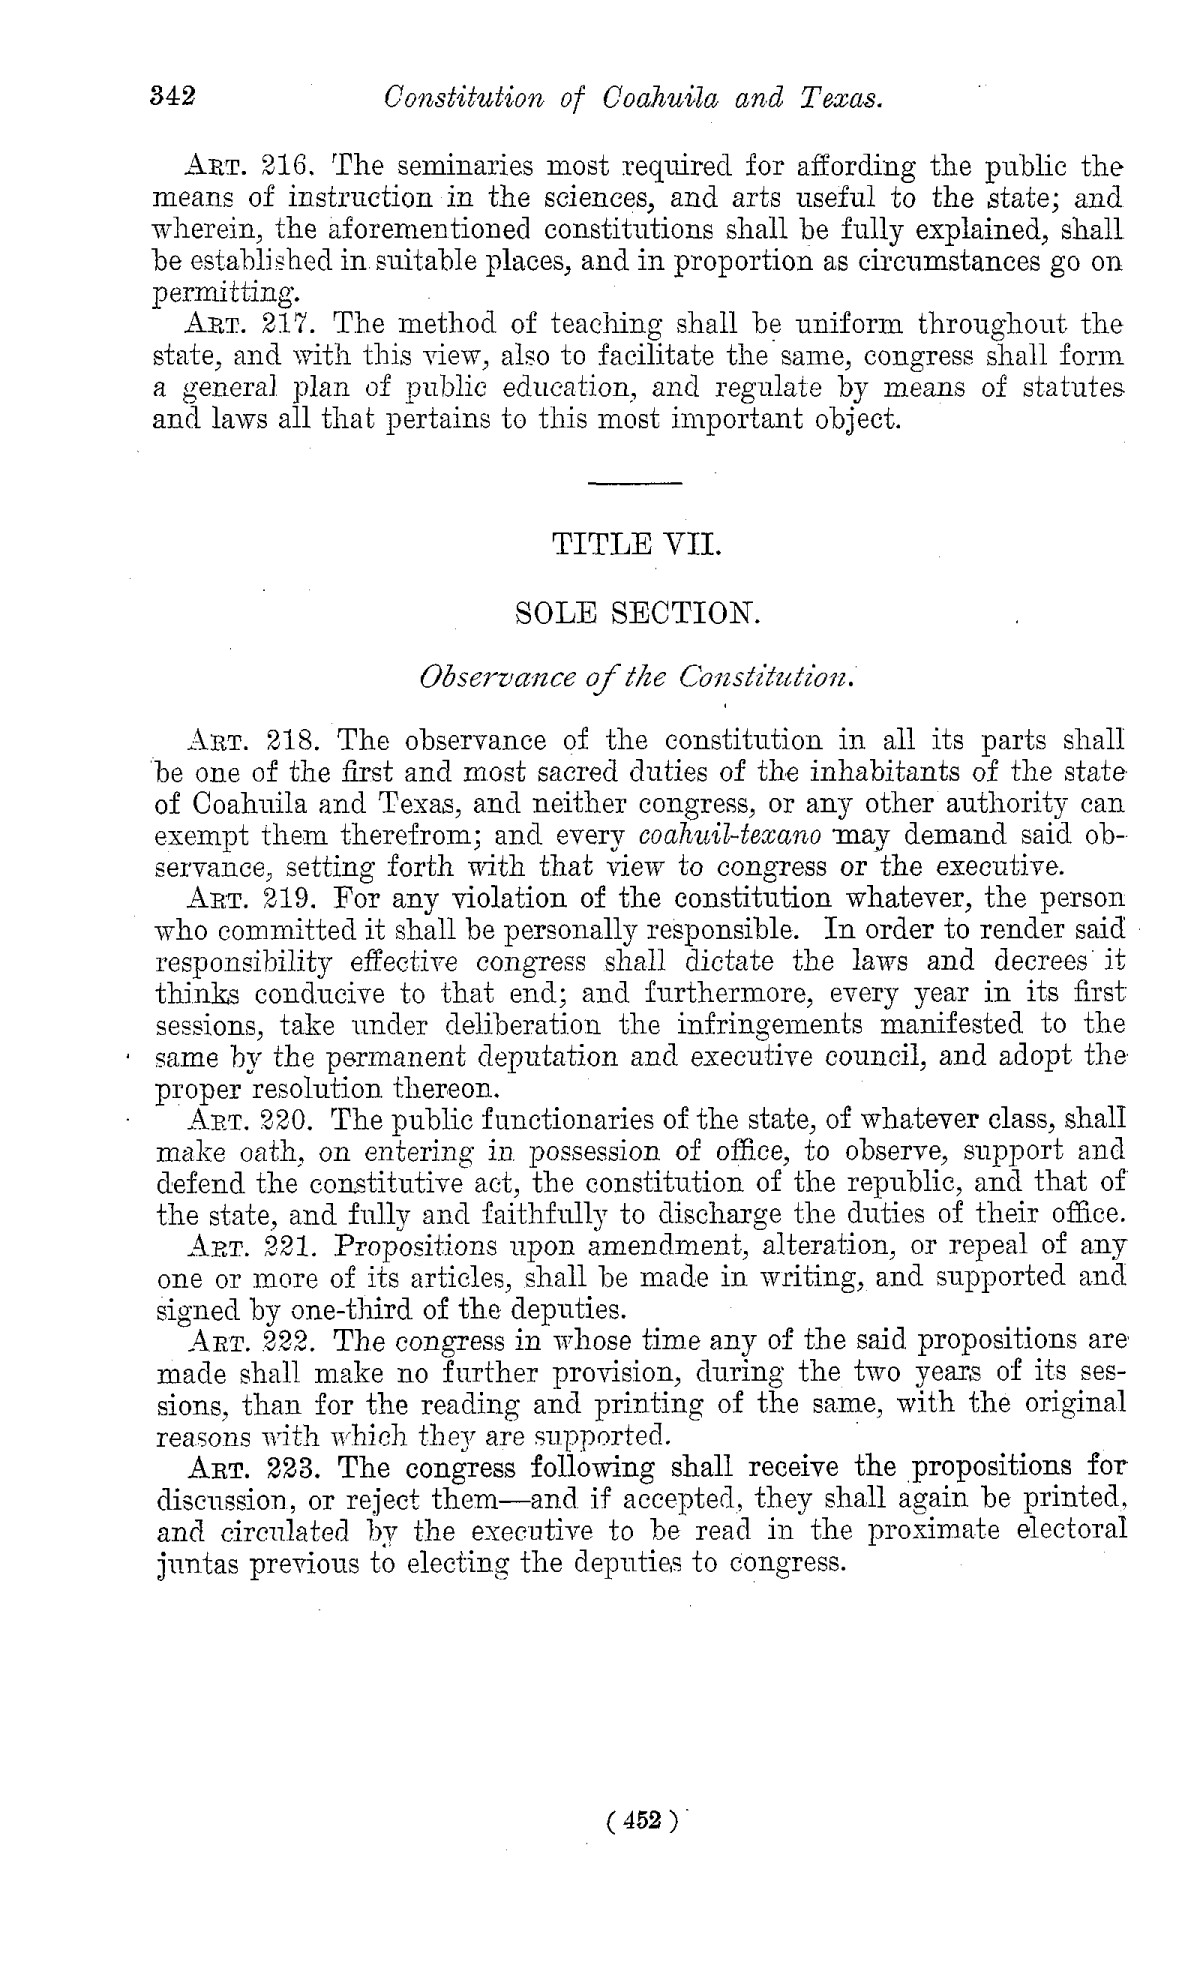 The Laws of Texas, 1822-1897 Volume 1                                                                                                      452